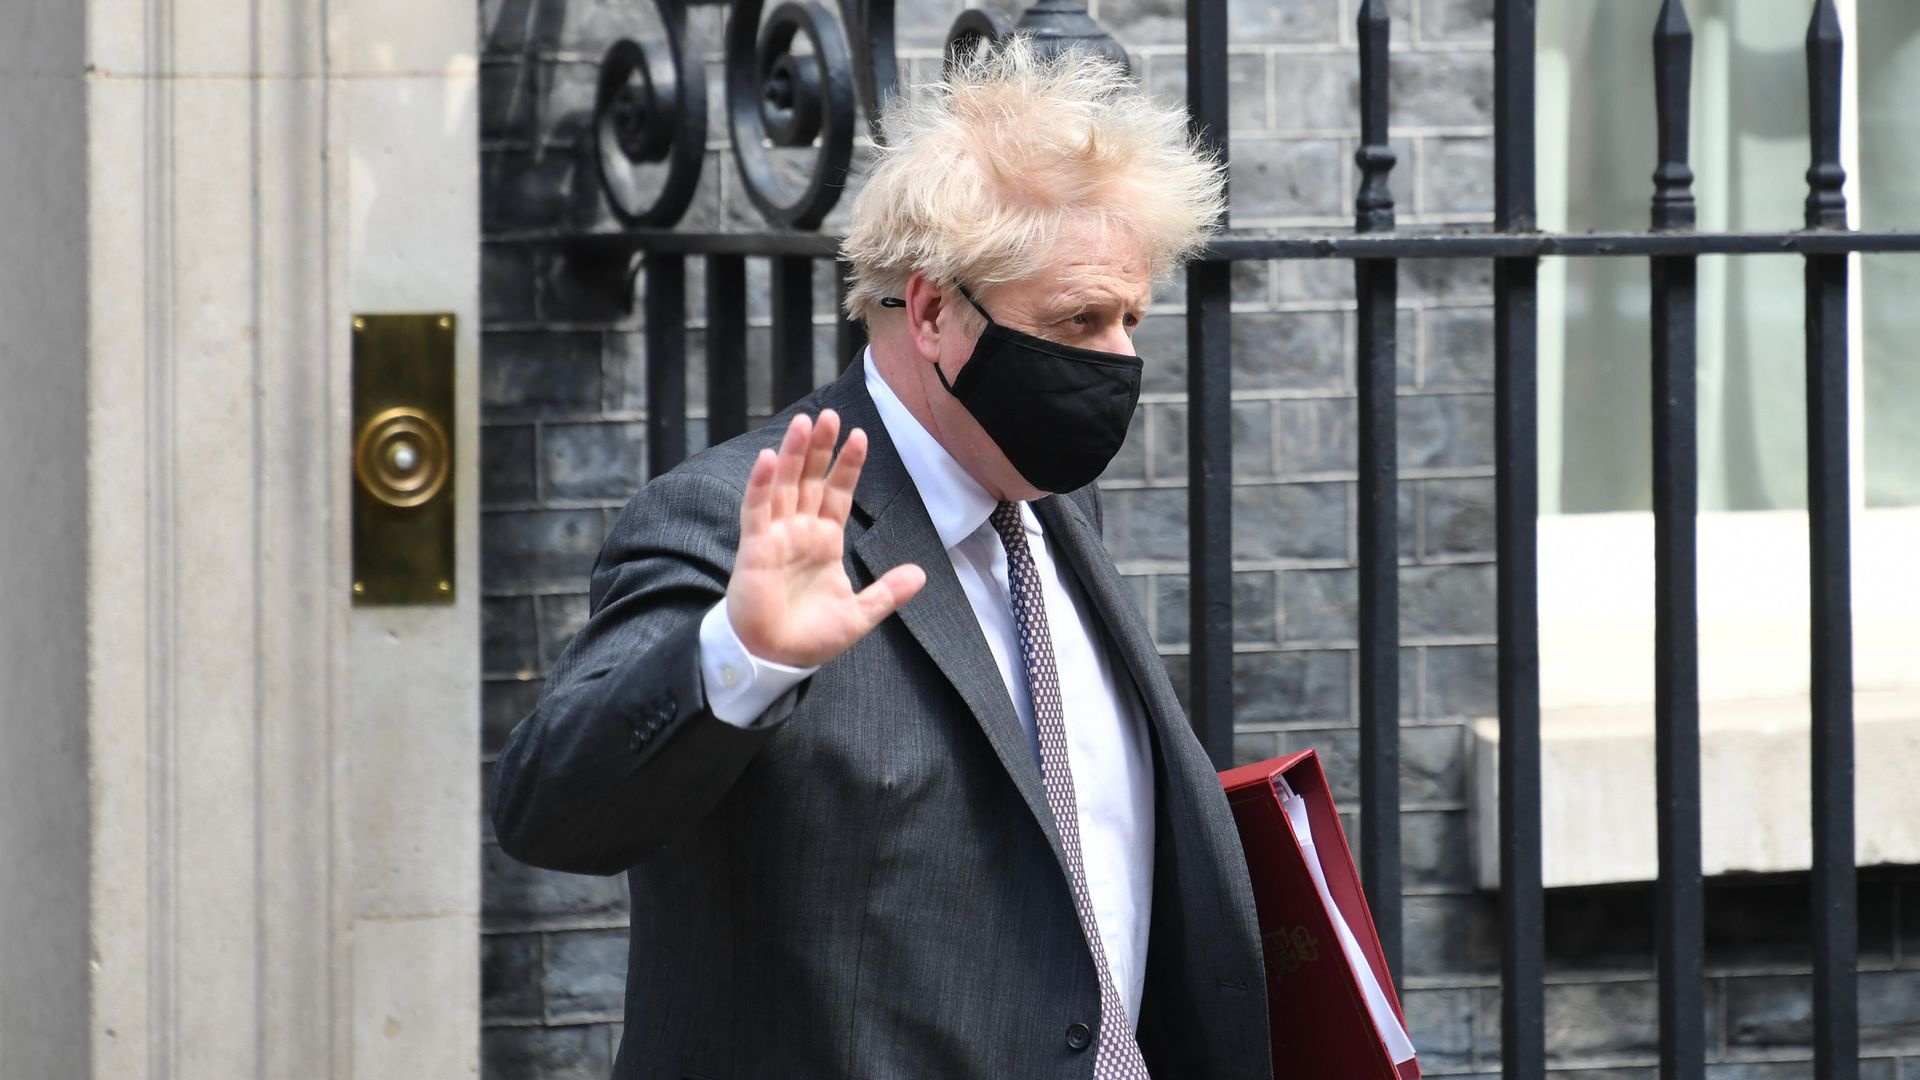 Boris Johnson has said an inquiry will take place 'when the time is right' - Credit: PA